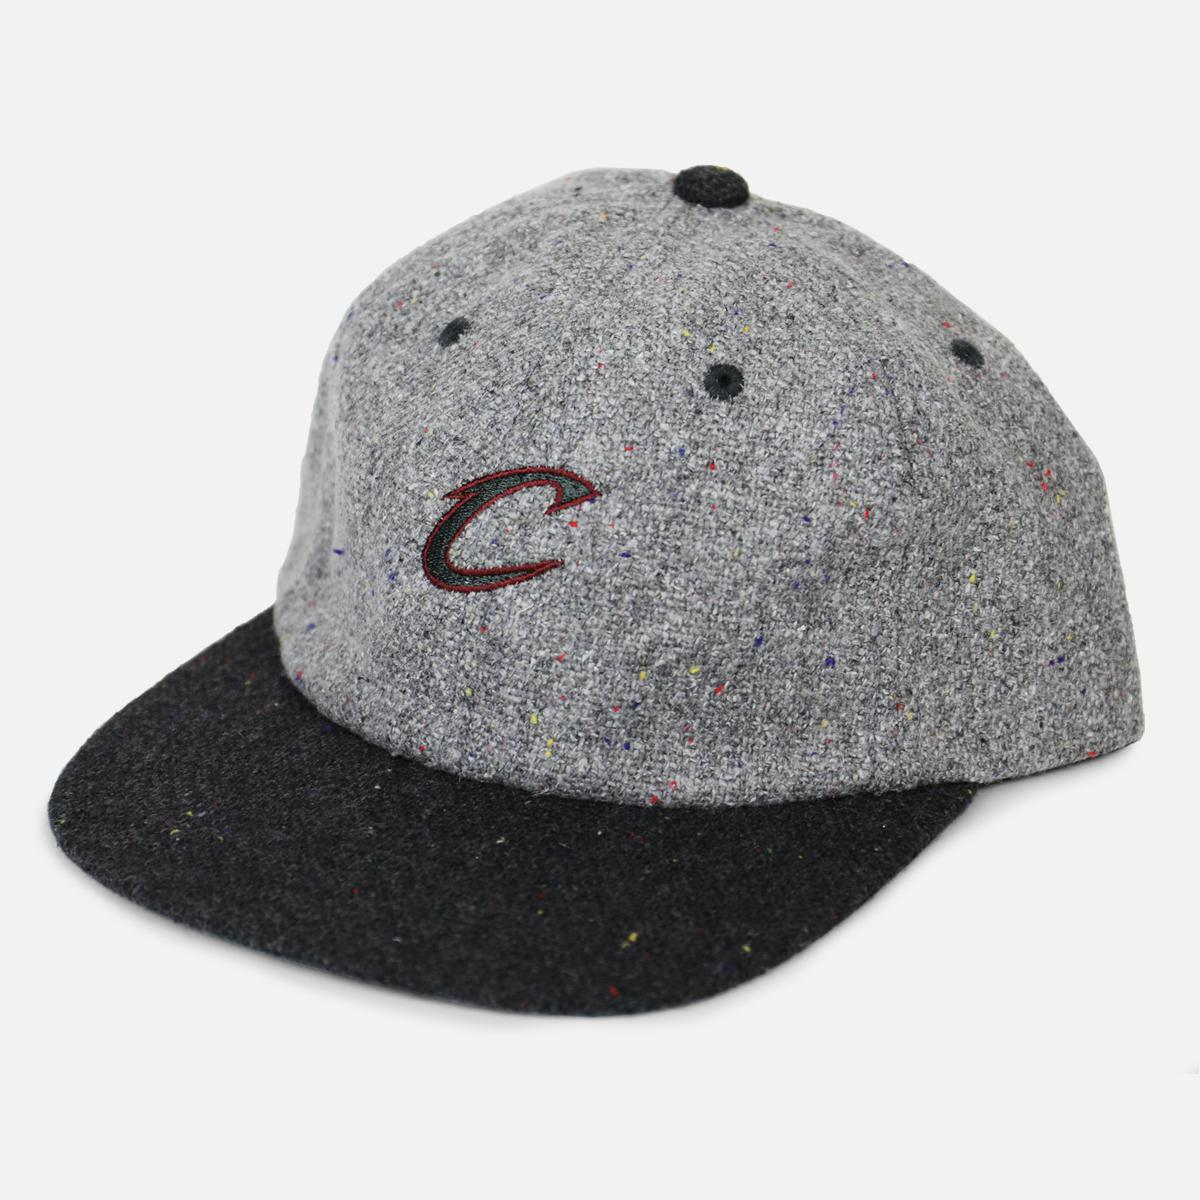 602dea67cad140 Lyst - Mitchell & Ness Cleveland Cavaliers Speckled Dad Hat in Gray ...